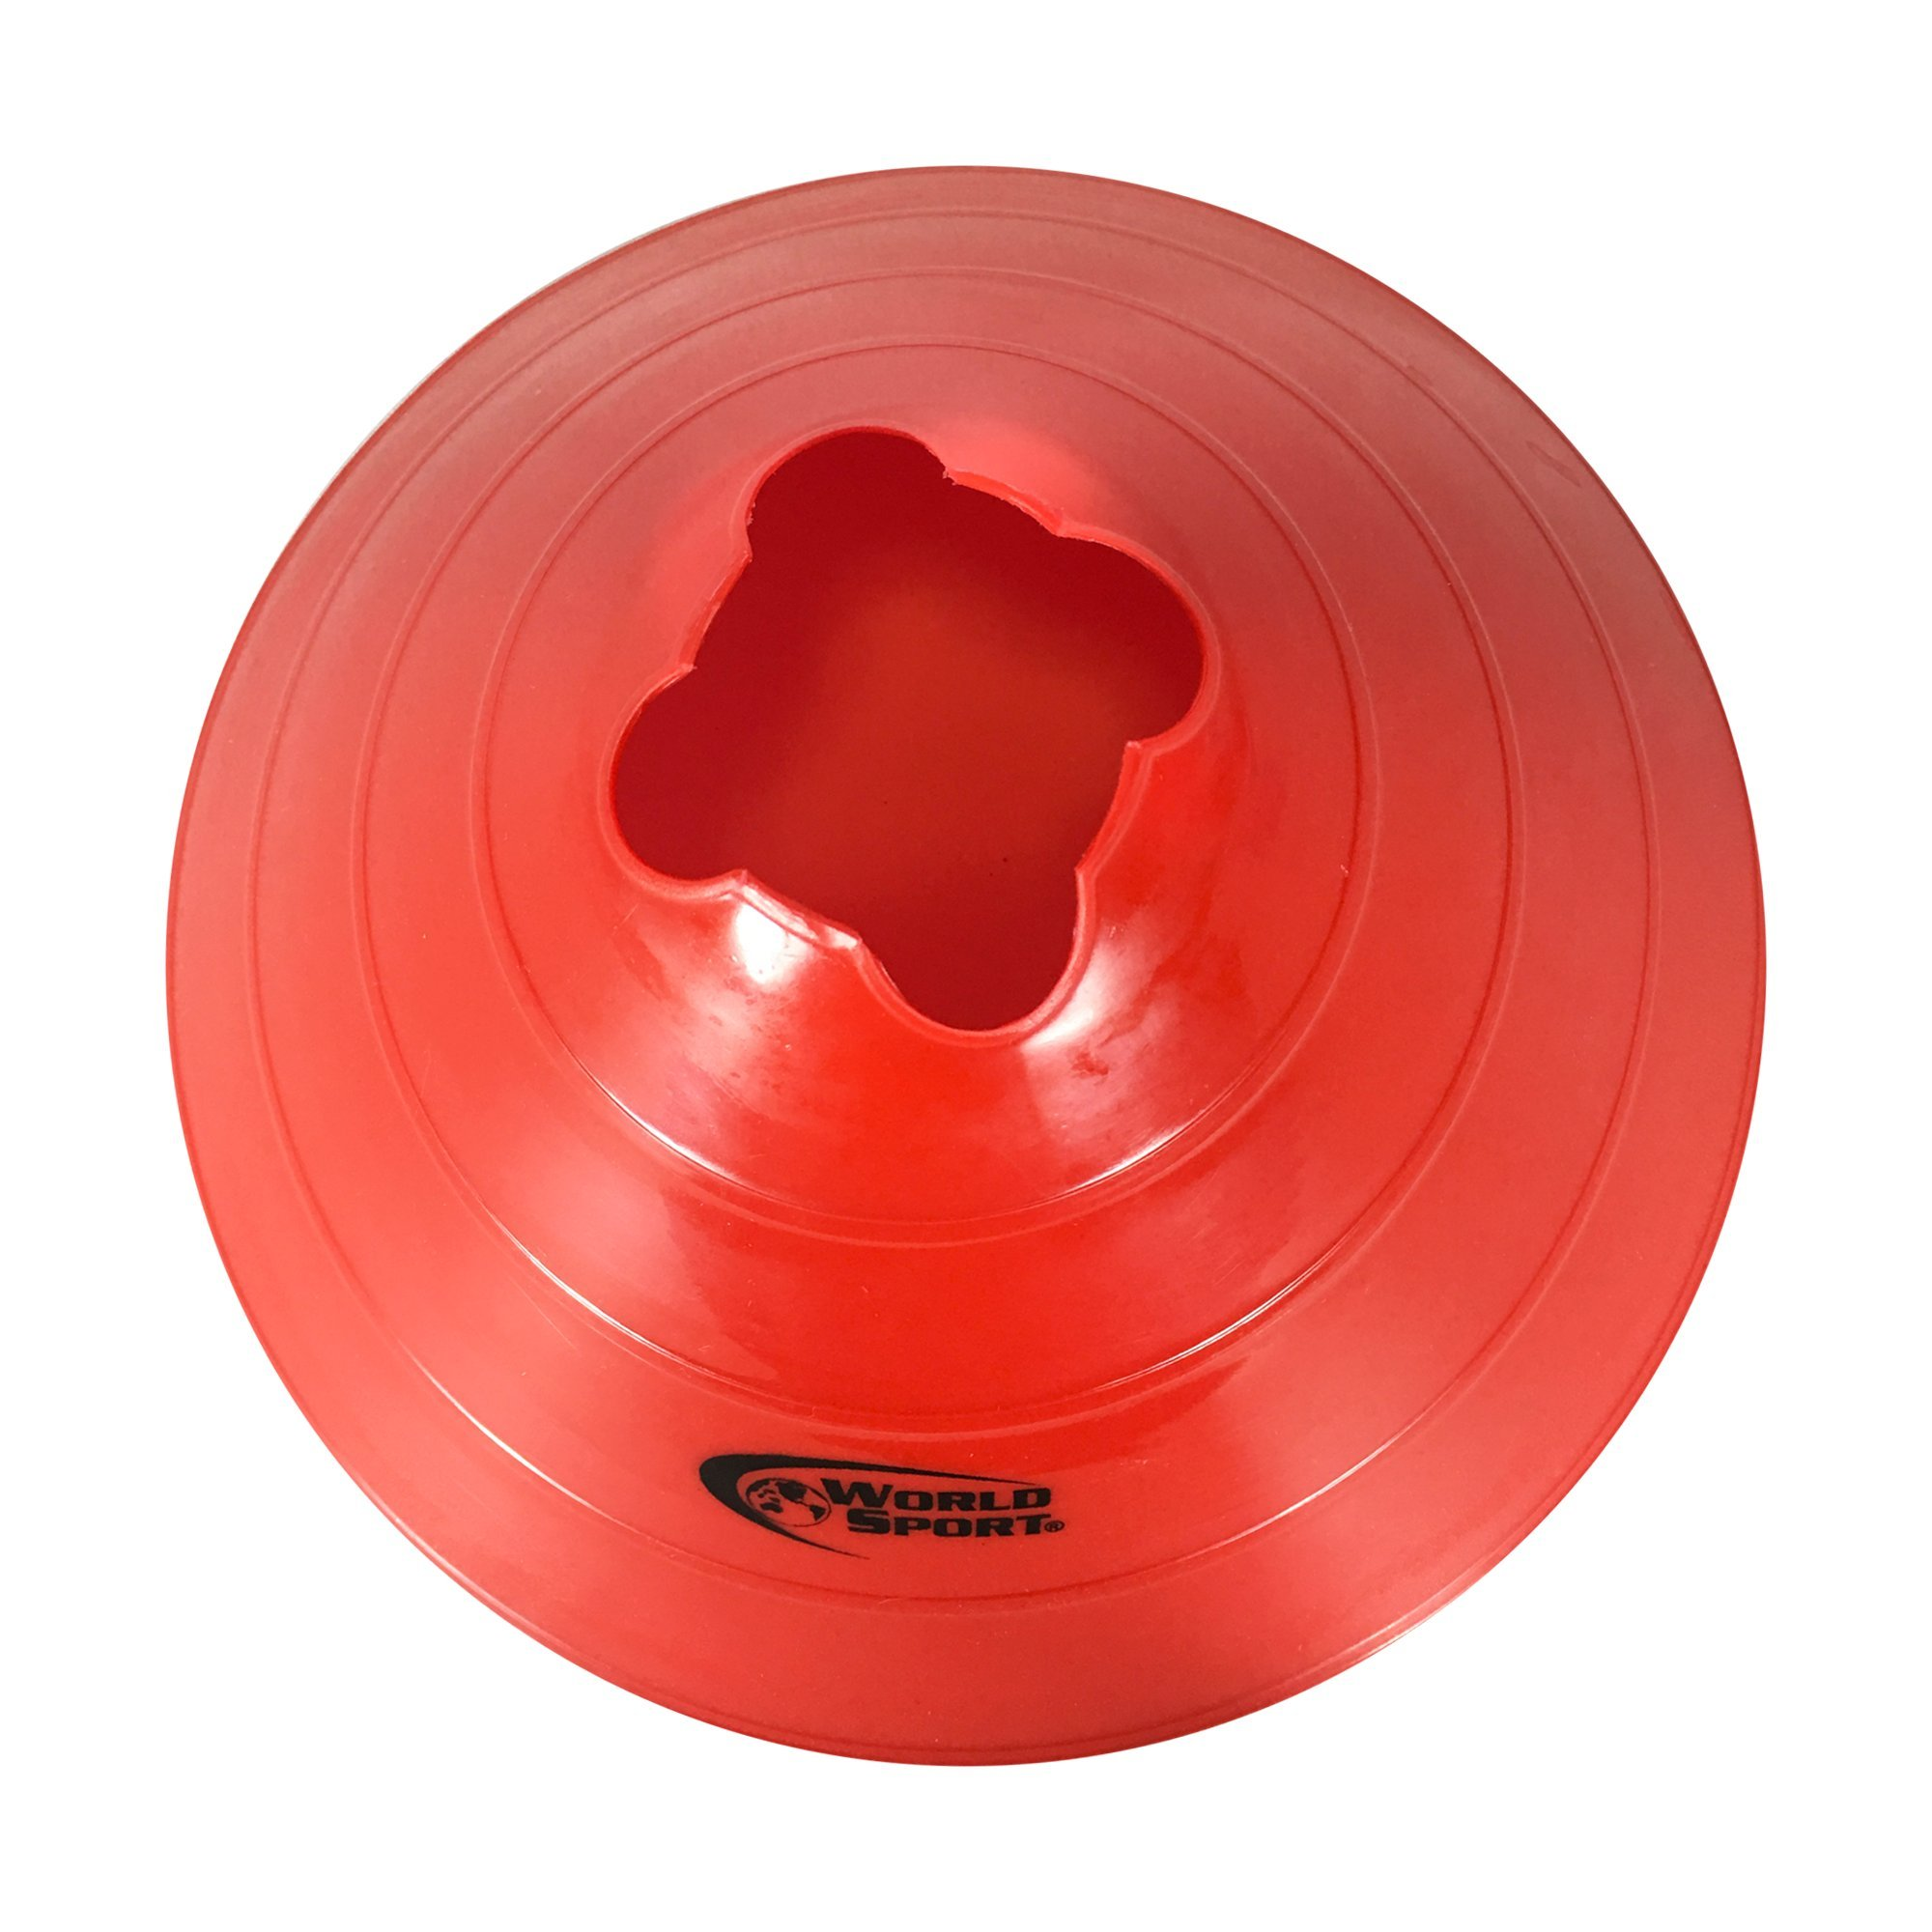 World Sport Large Multi Color (Red White Blue) Disc Cones by World Sport (Image #3)